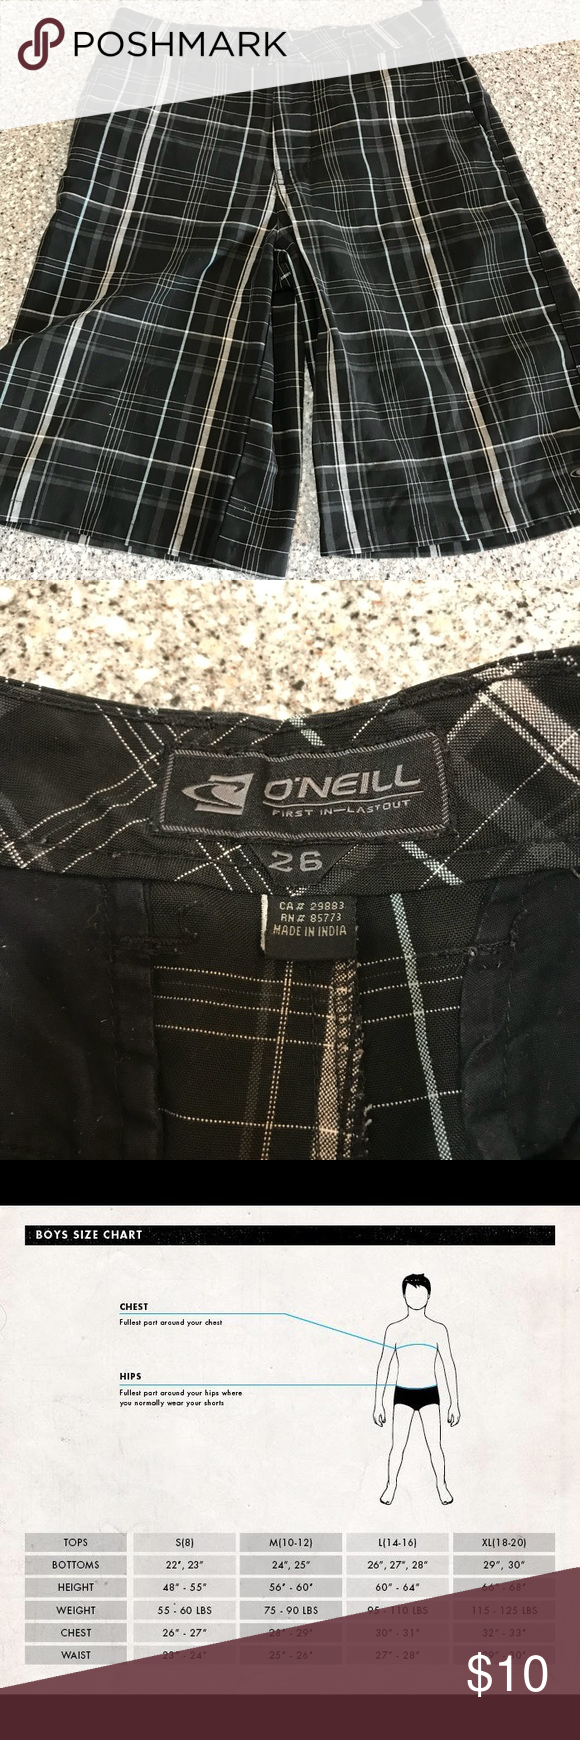 Euc O Neill Shorts 26 Waist Size 10 12 Clothes Design Things To Sell Size 10